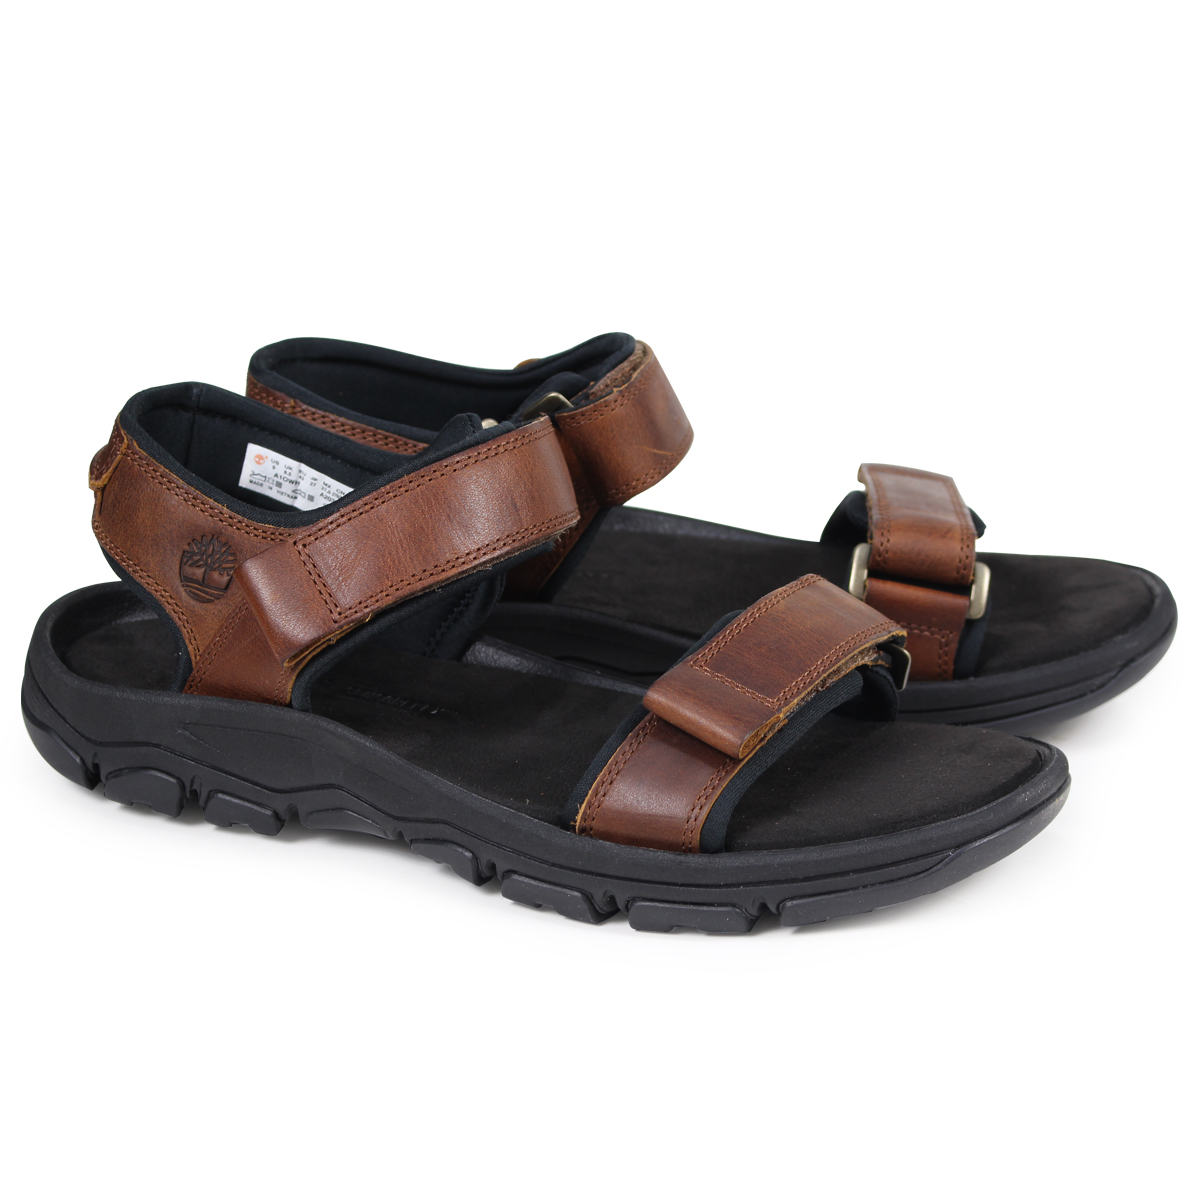 d9010eef5c Whats up Sports  Timberland ROSLINDALE 2-STRAP SANDALS Timberland sandals  men A1OWH M Wise brown  load planned Shinnyu load in reservation product  3 13 ...